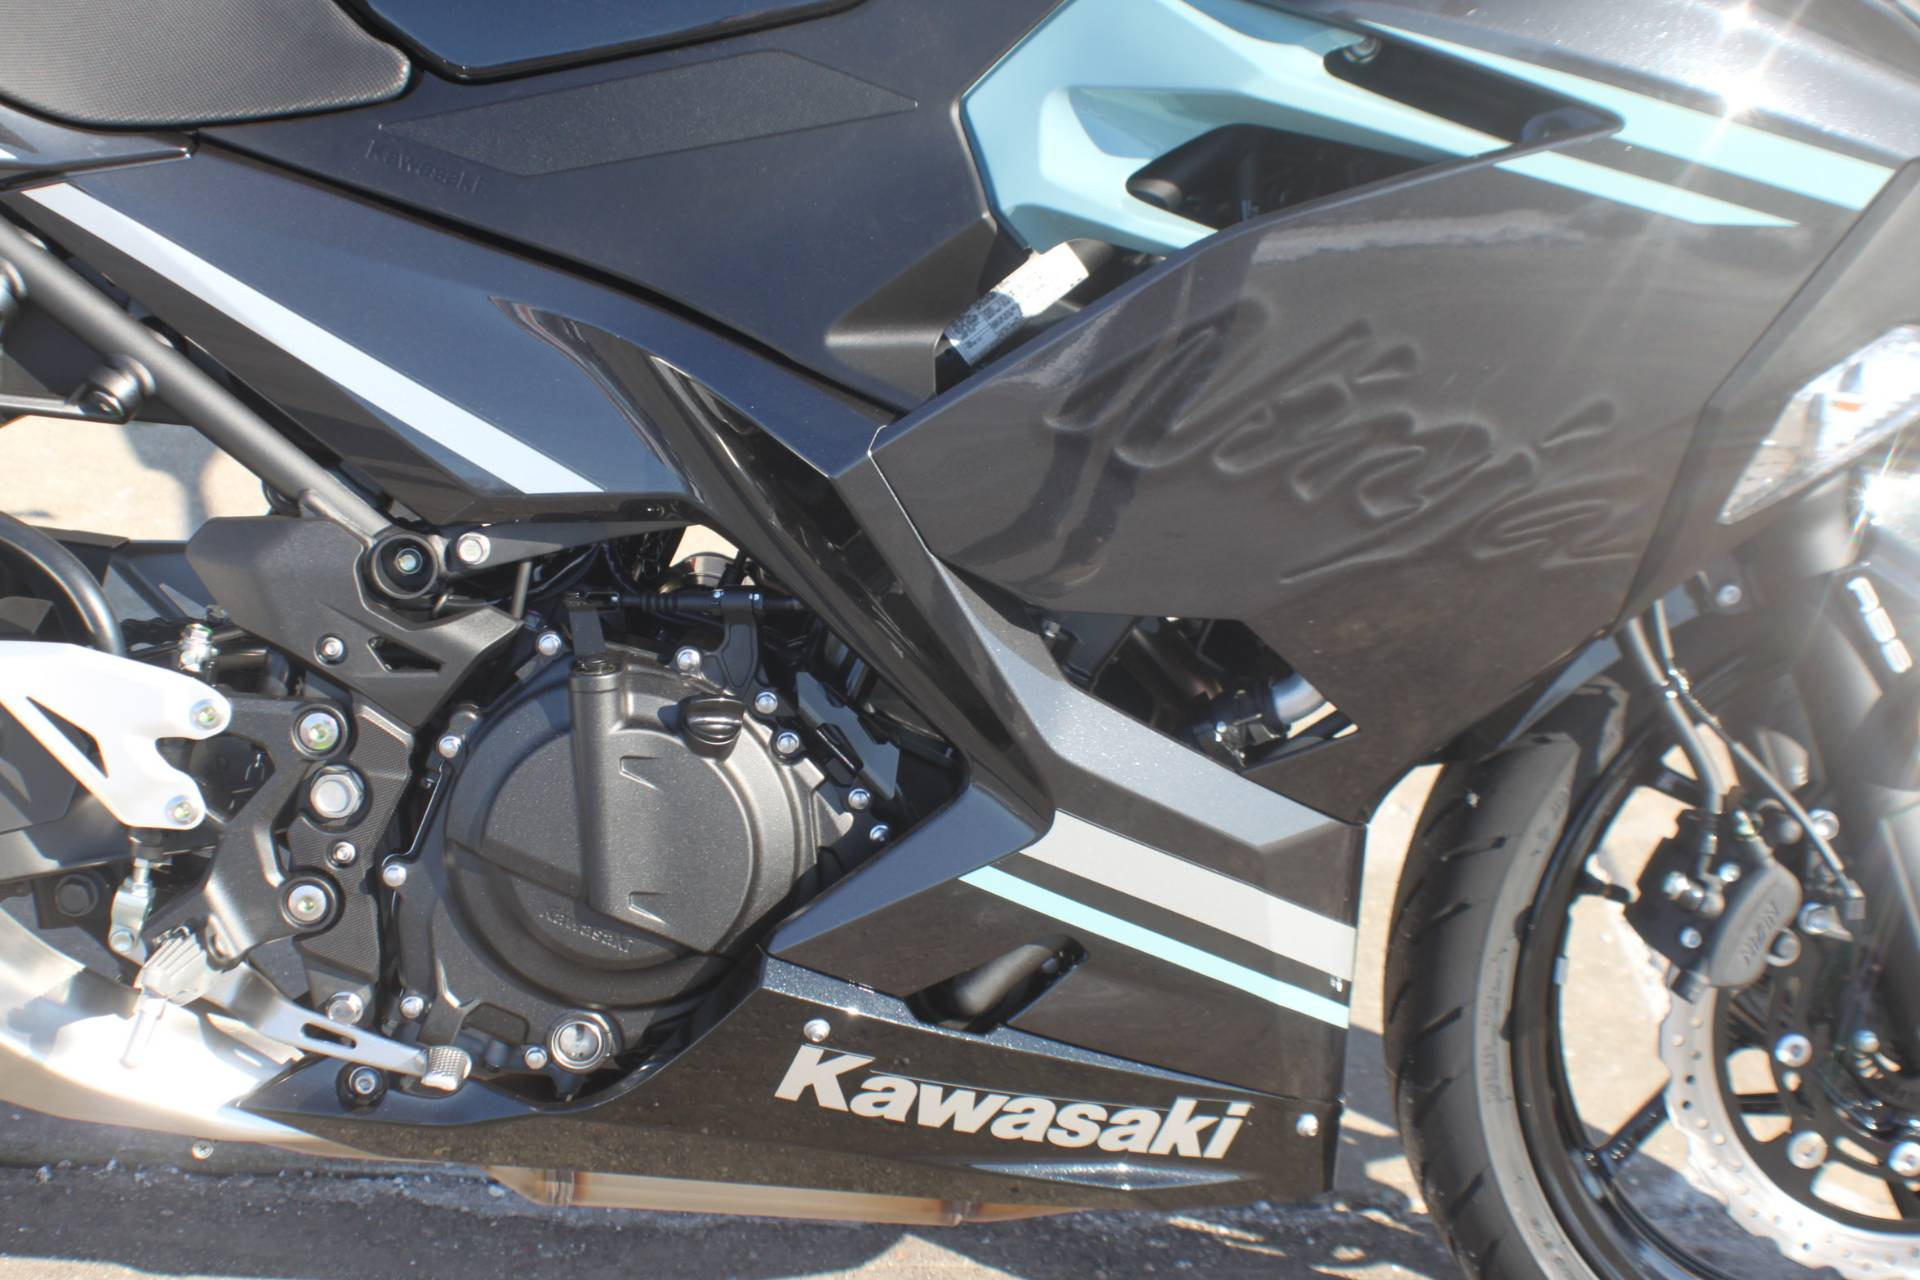 2020 Kawasaki Ninja 400 ABS in Janesville, Wisconsin - Photo 11